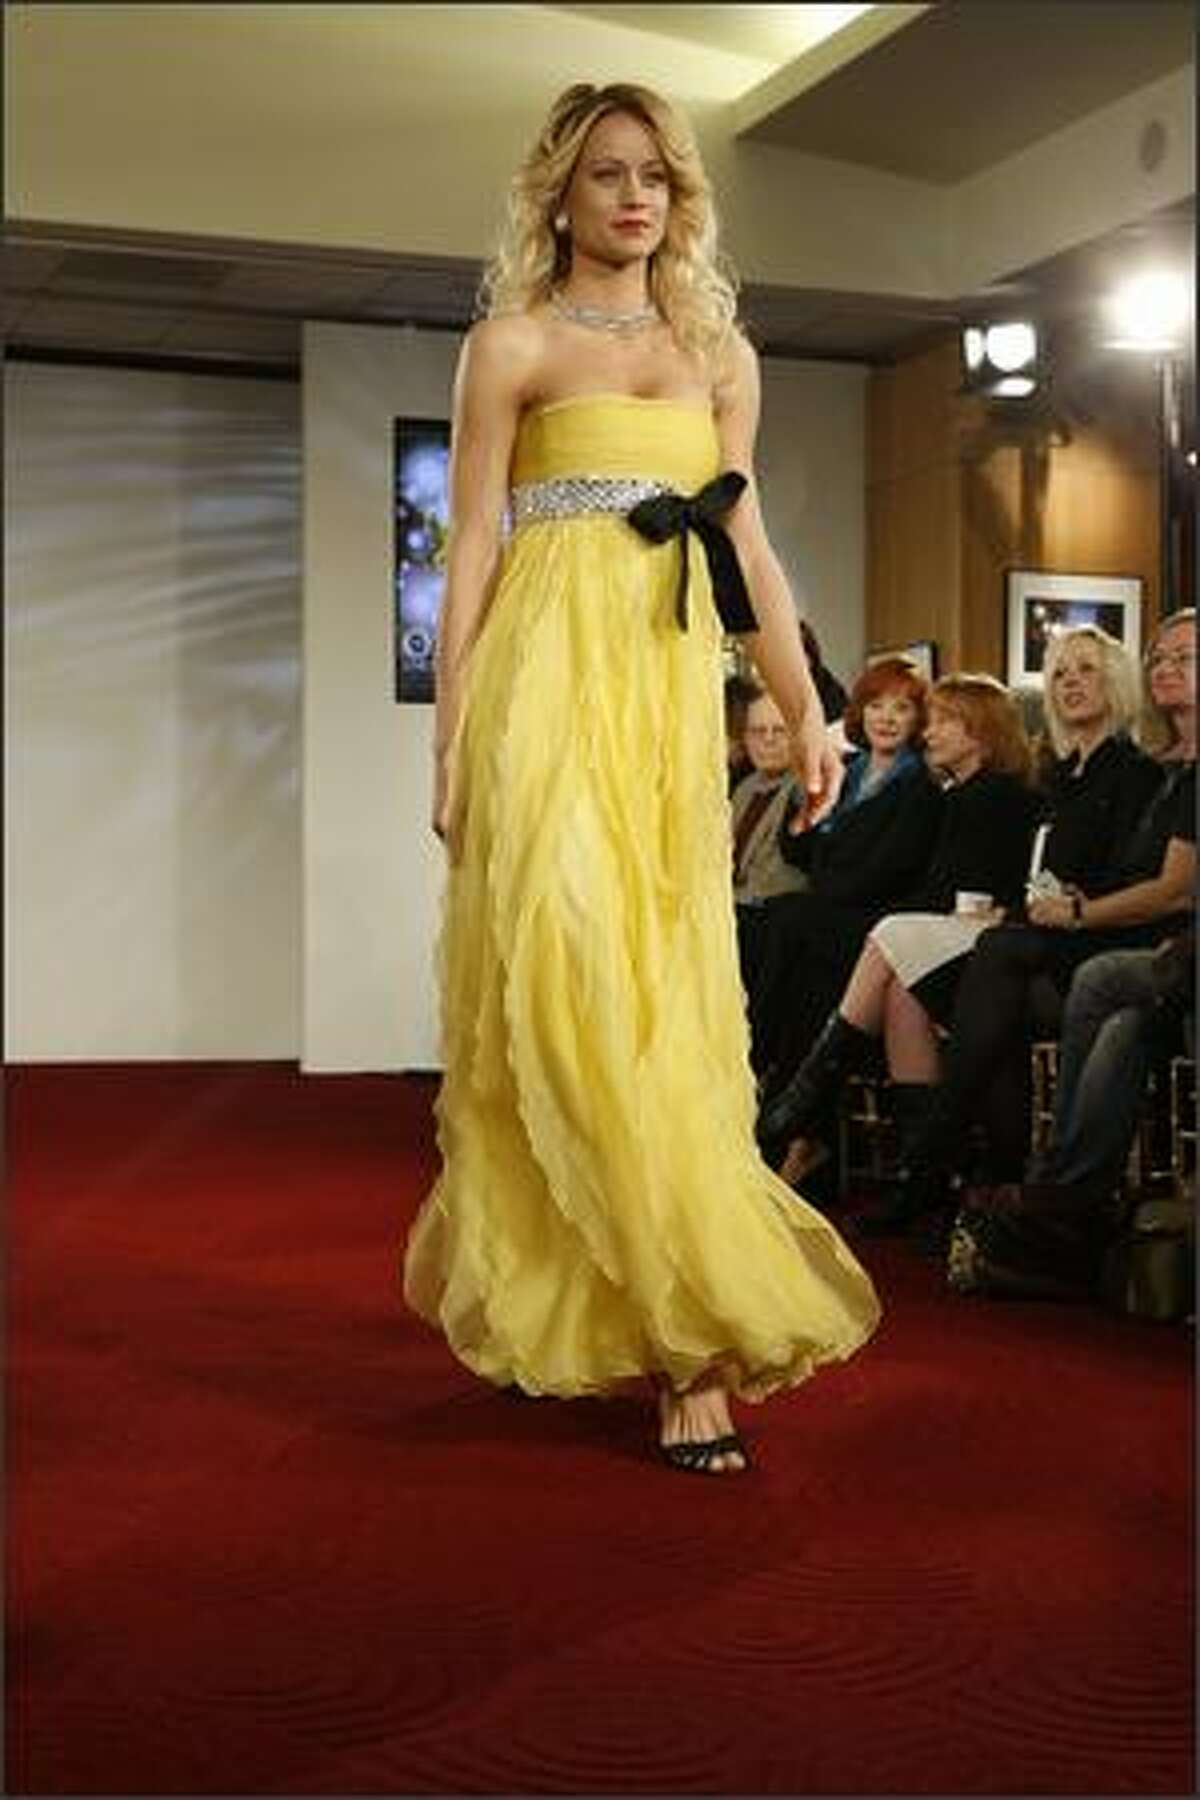 A model walks the runway at the Oscar Fashion Show at the Academy of Motion Pictures Arts and Sciences on Wednesday in Beverly Hills, Calif.